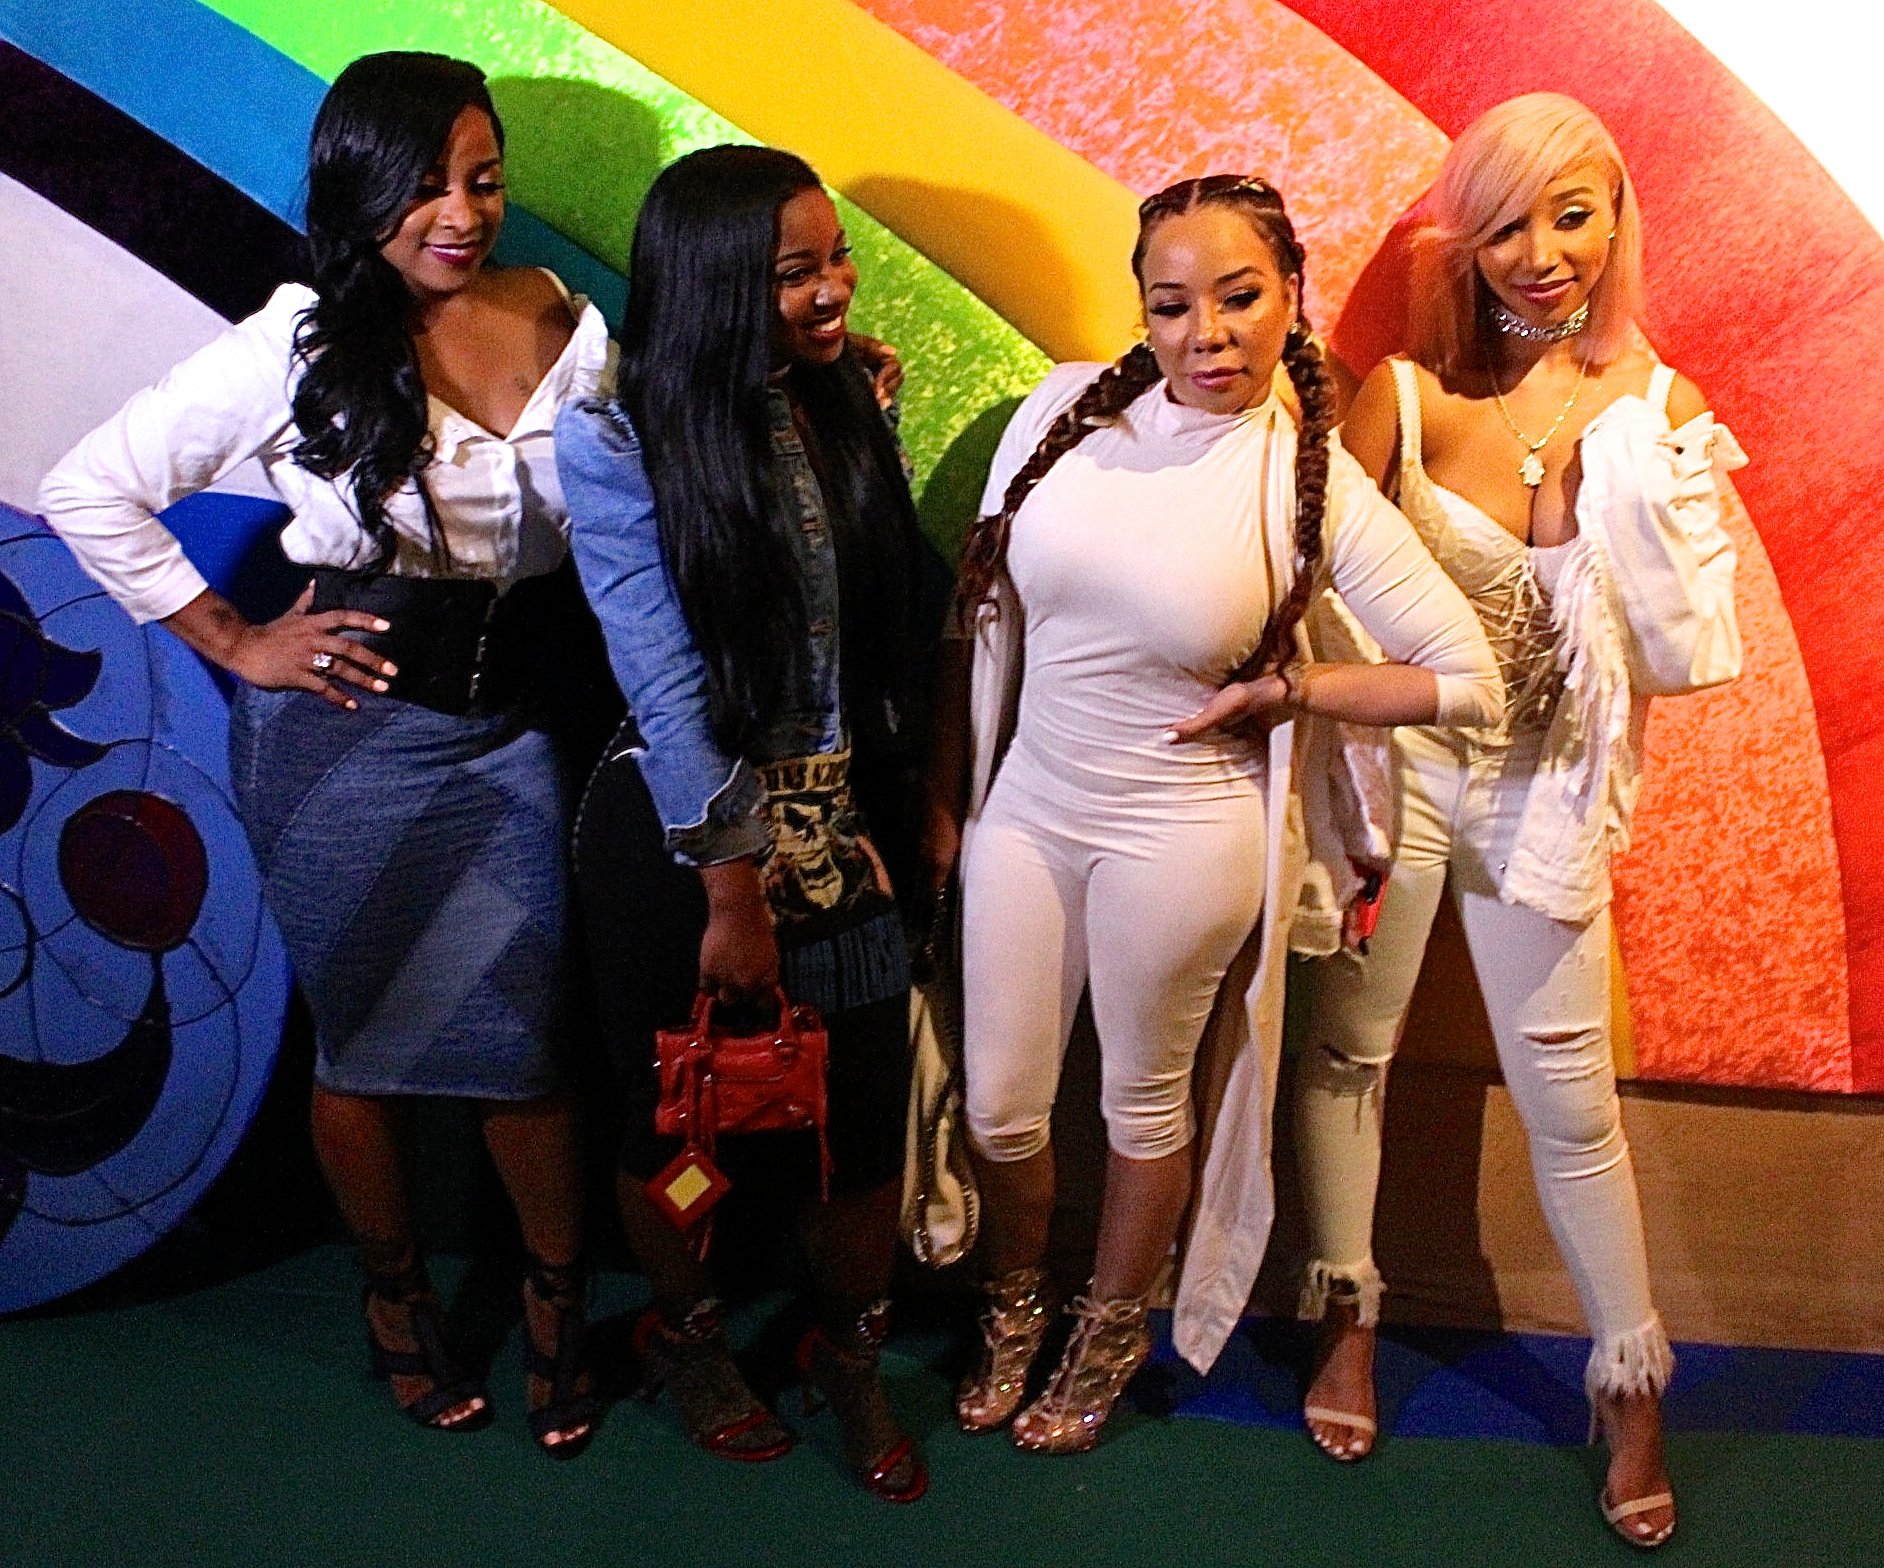 reginae-carter-zonnique-pullins-and-their-moms-tiny-harris-and-toya-wright-are-laughing-their-hearts-out-in-this-video-doing-it-all-to-look-snatched